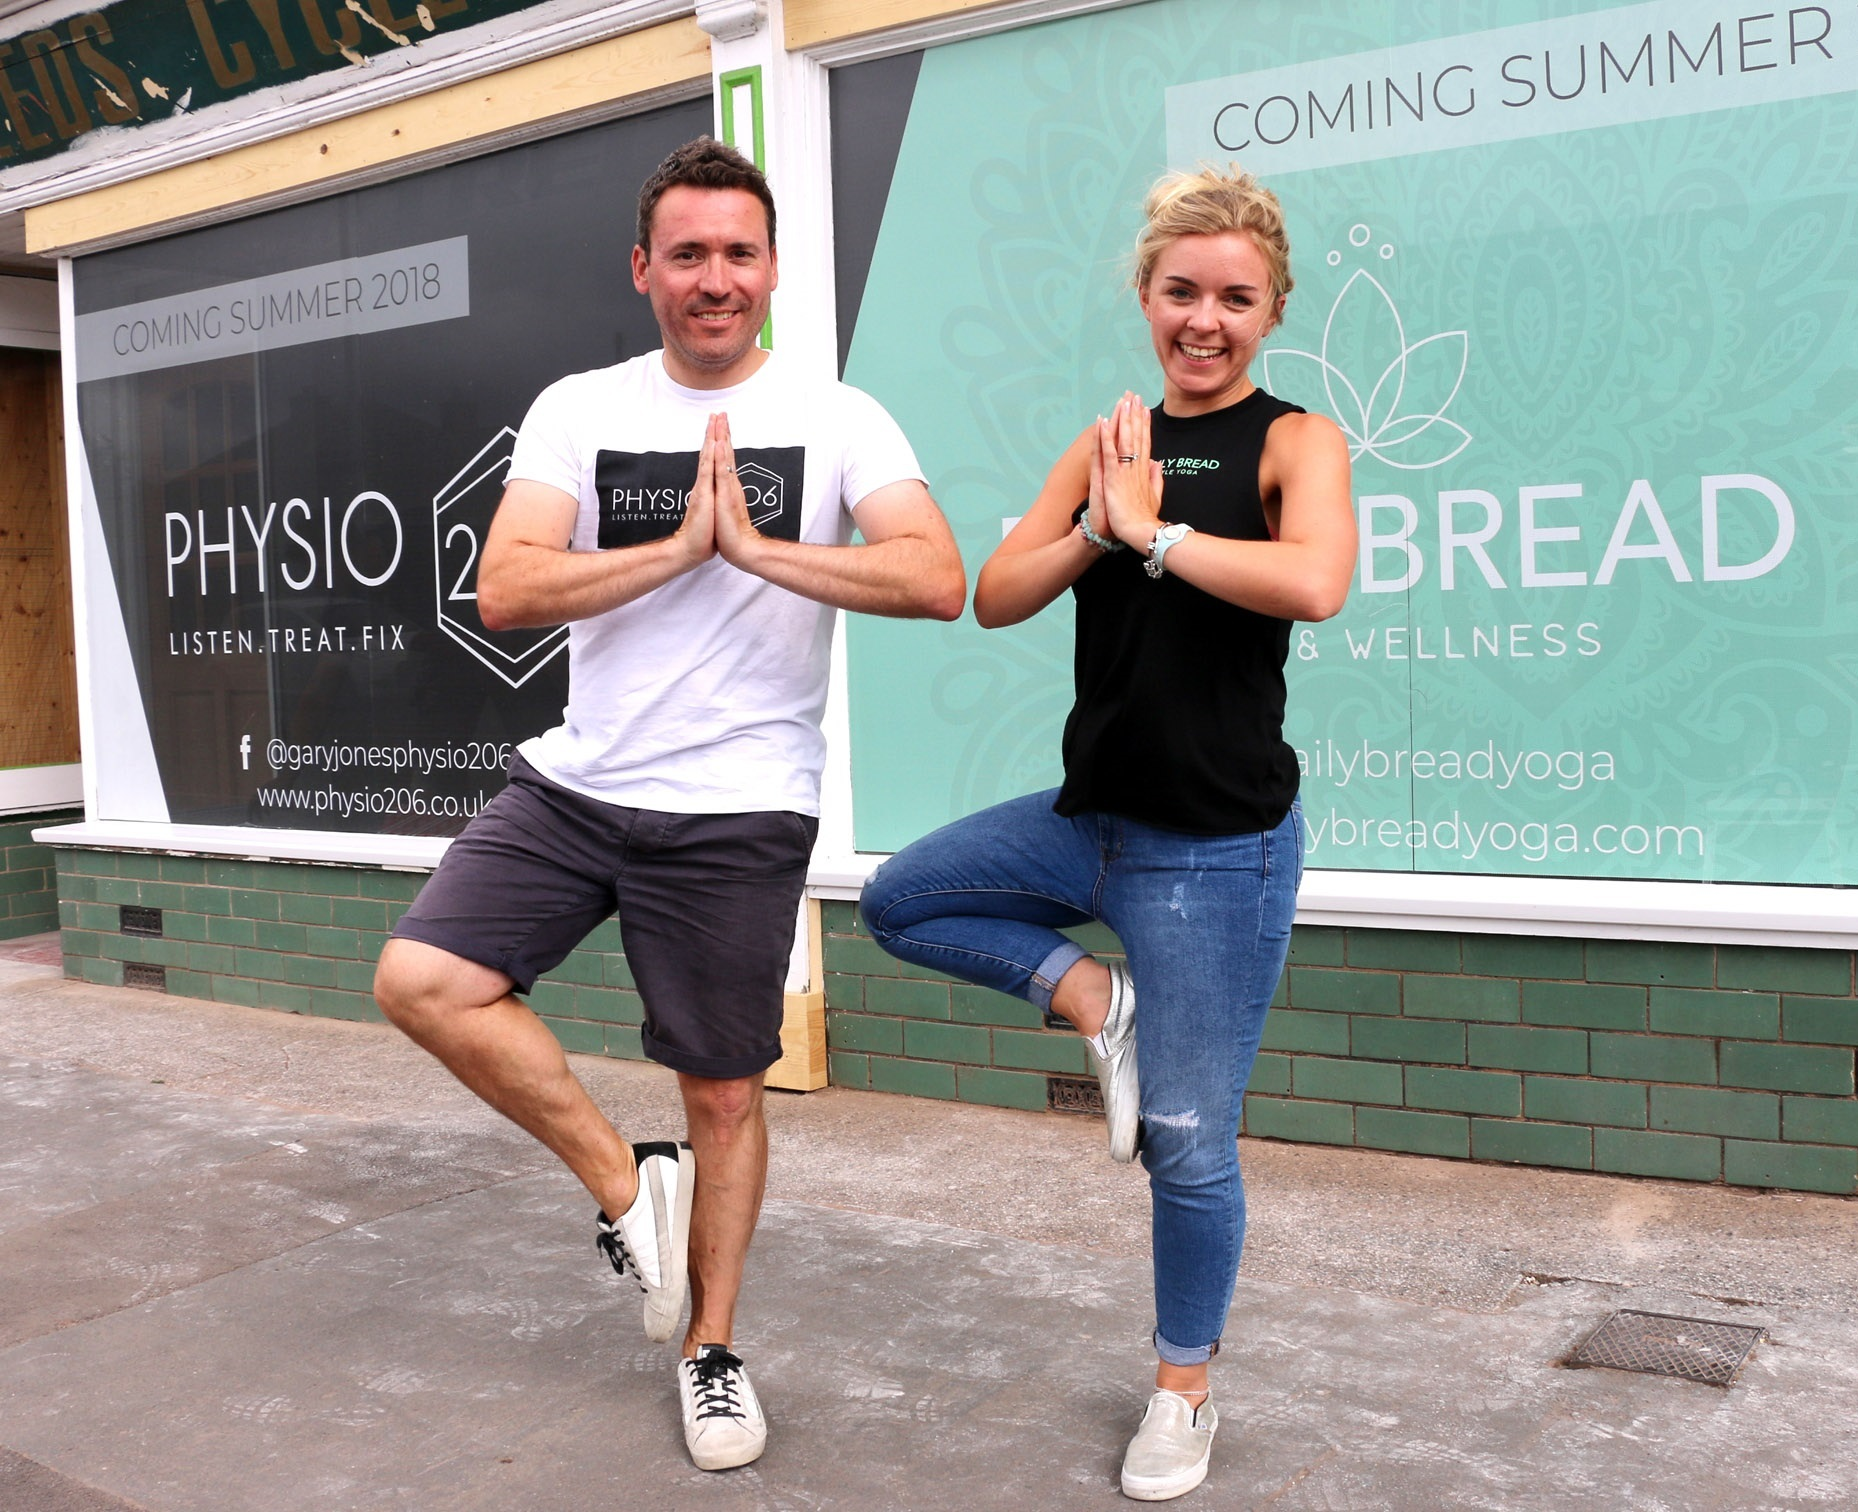 Gary Jones, of Physio 206, and yoga studio owner Faye Jones